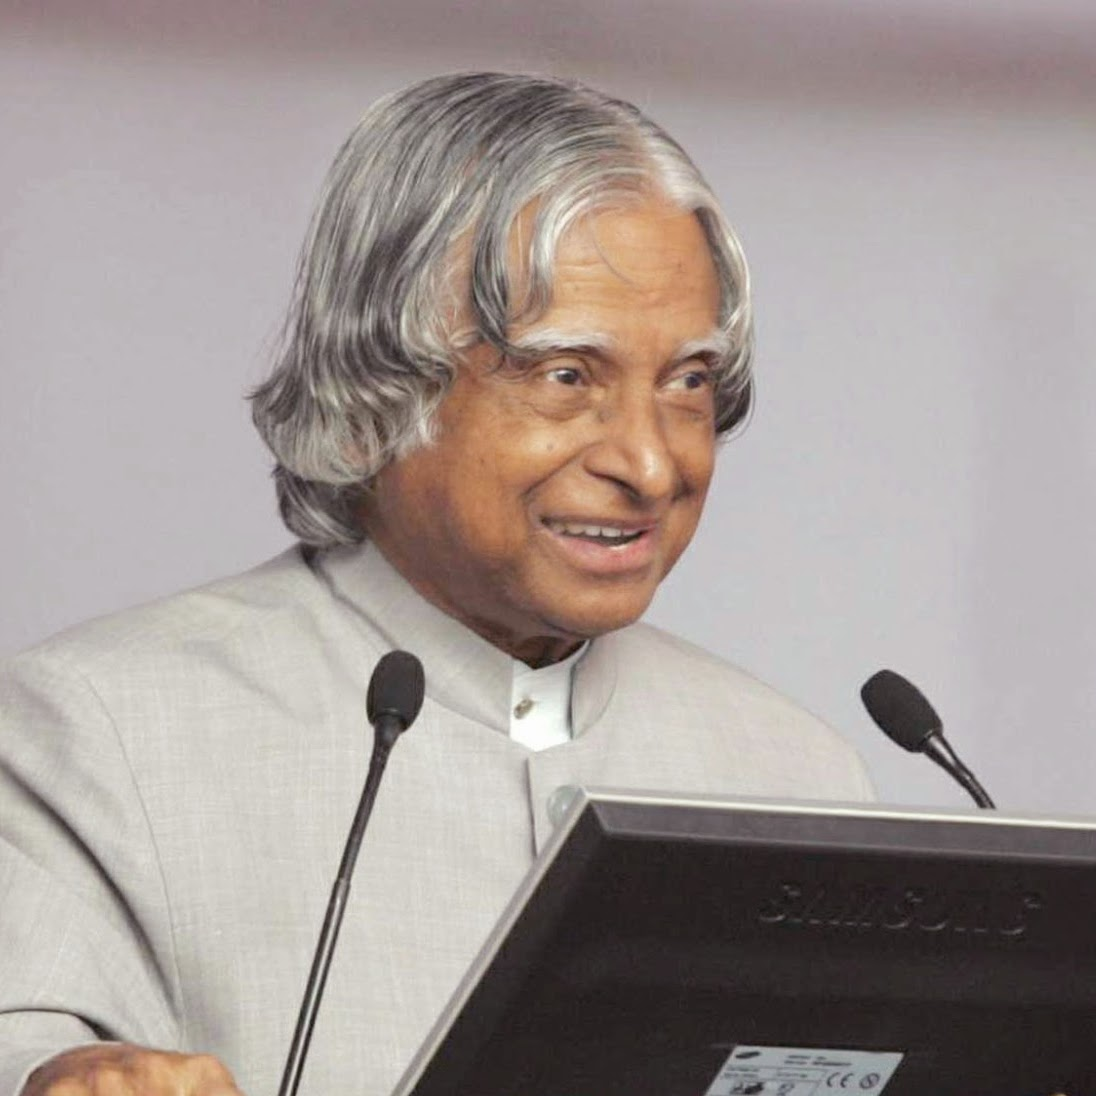 apj abdul kalam essay Free 528 words essay on life of dr apj abdul kalam, the 'missile man of india' for school and college students without a doubt, dr a p j abdul kalam is.